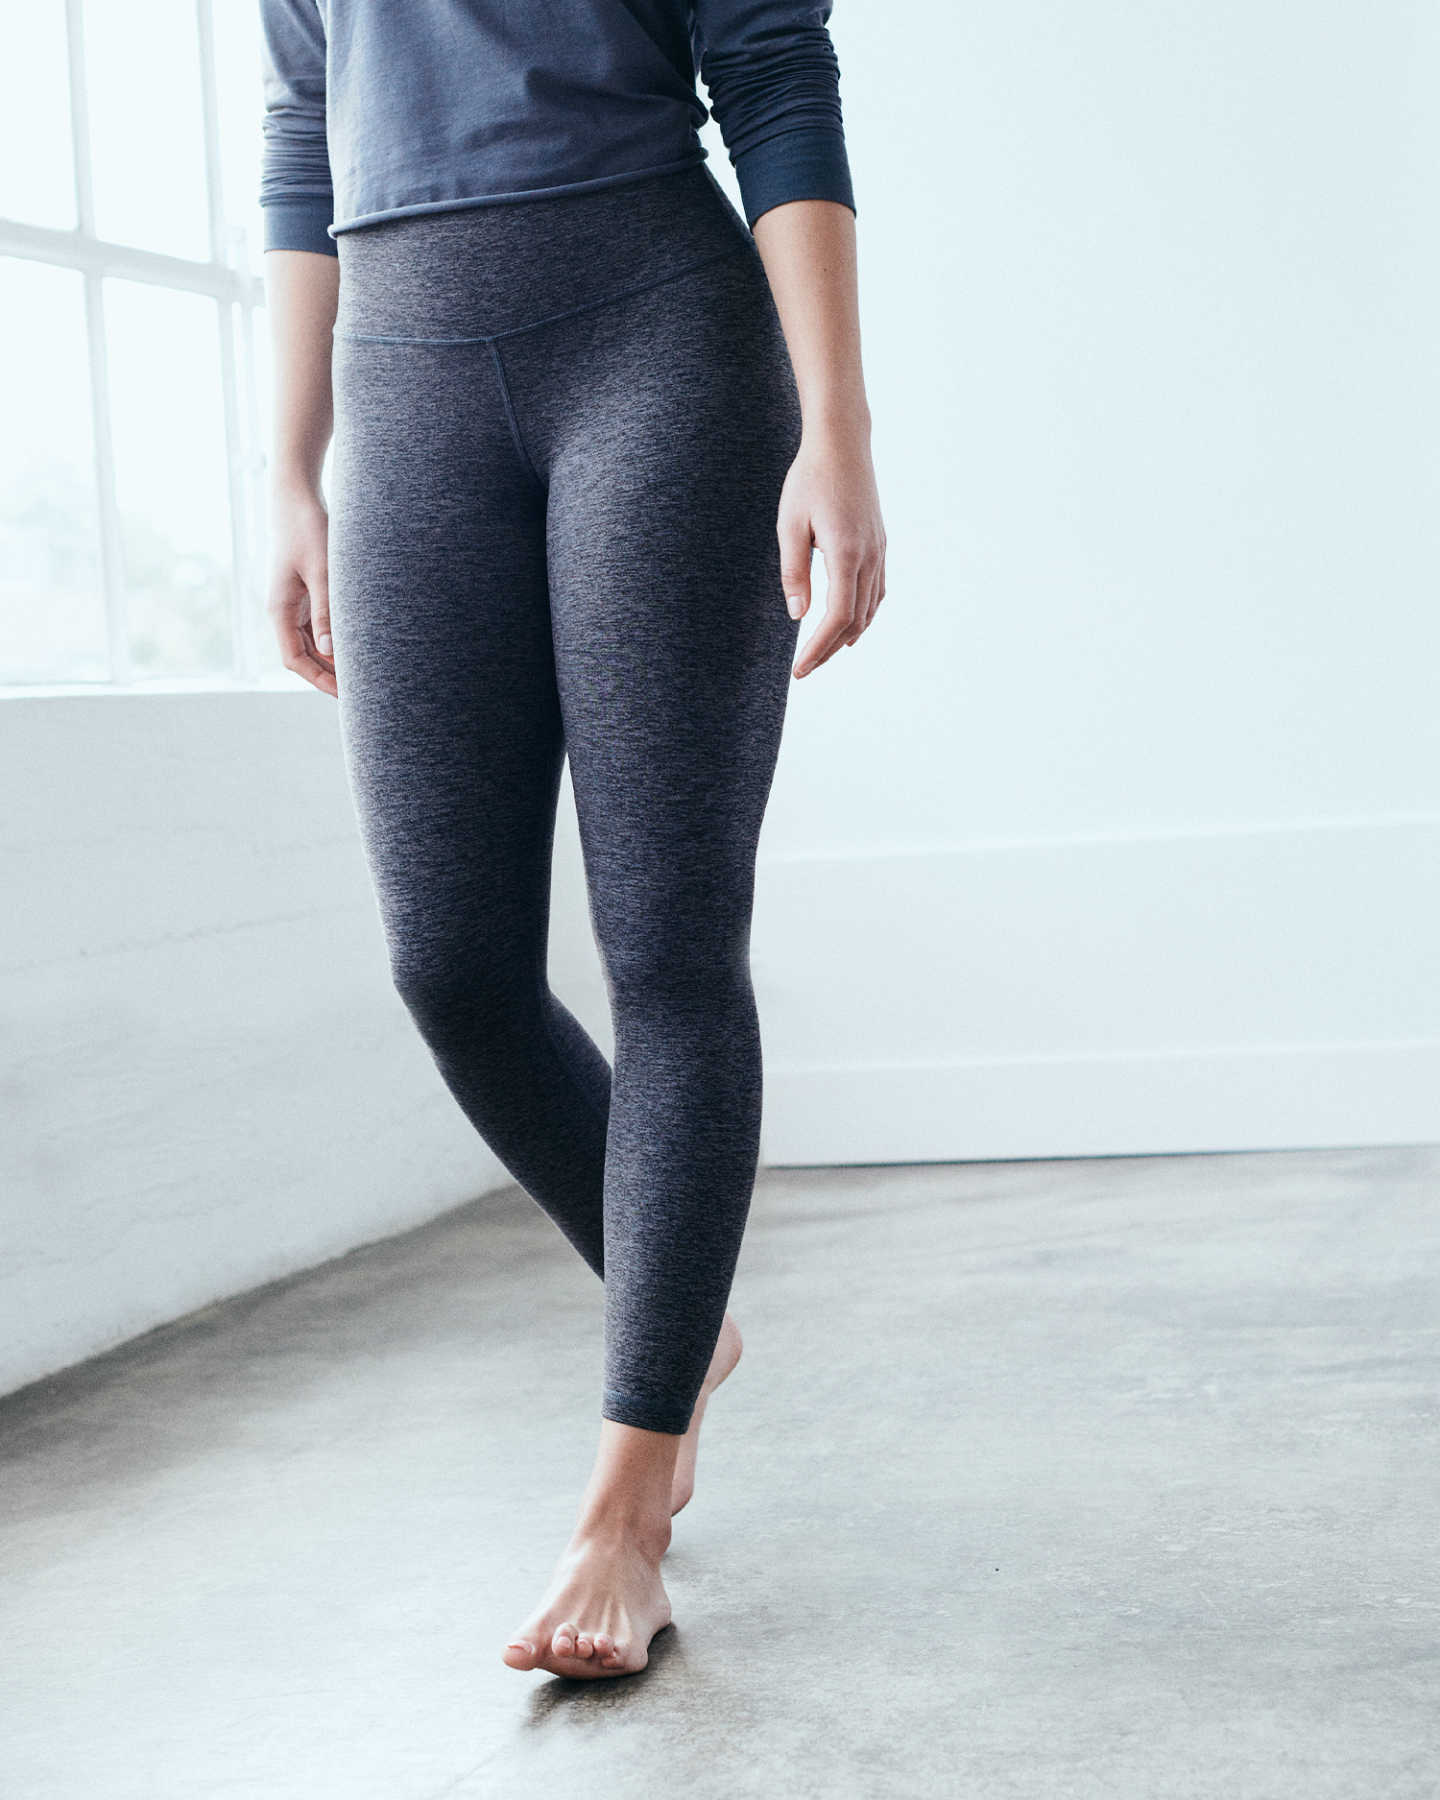 Flowknit Ultra-Soft Performance Legging - Charcoal